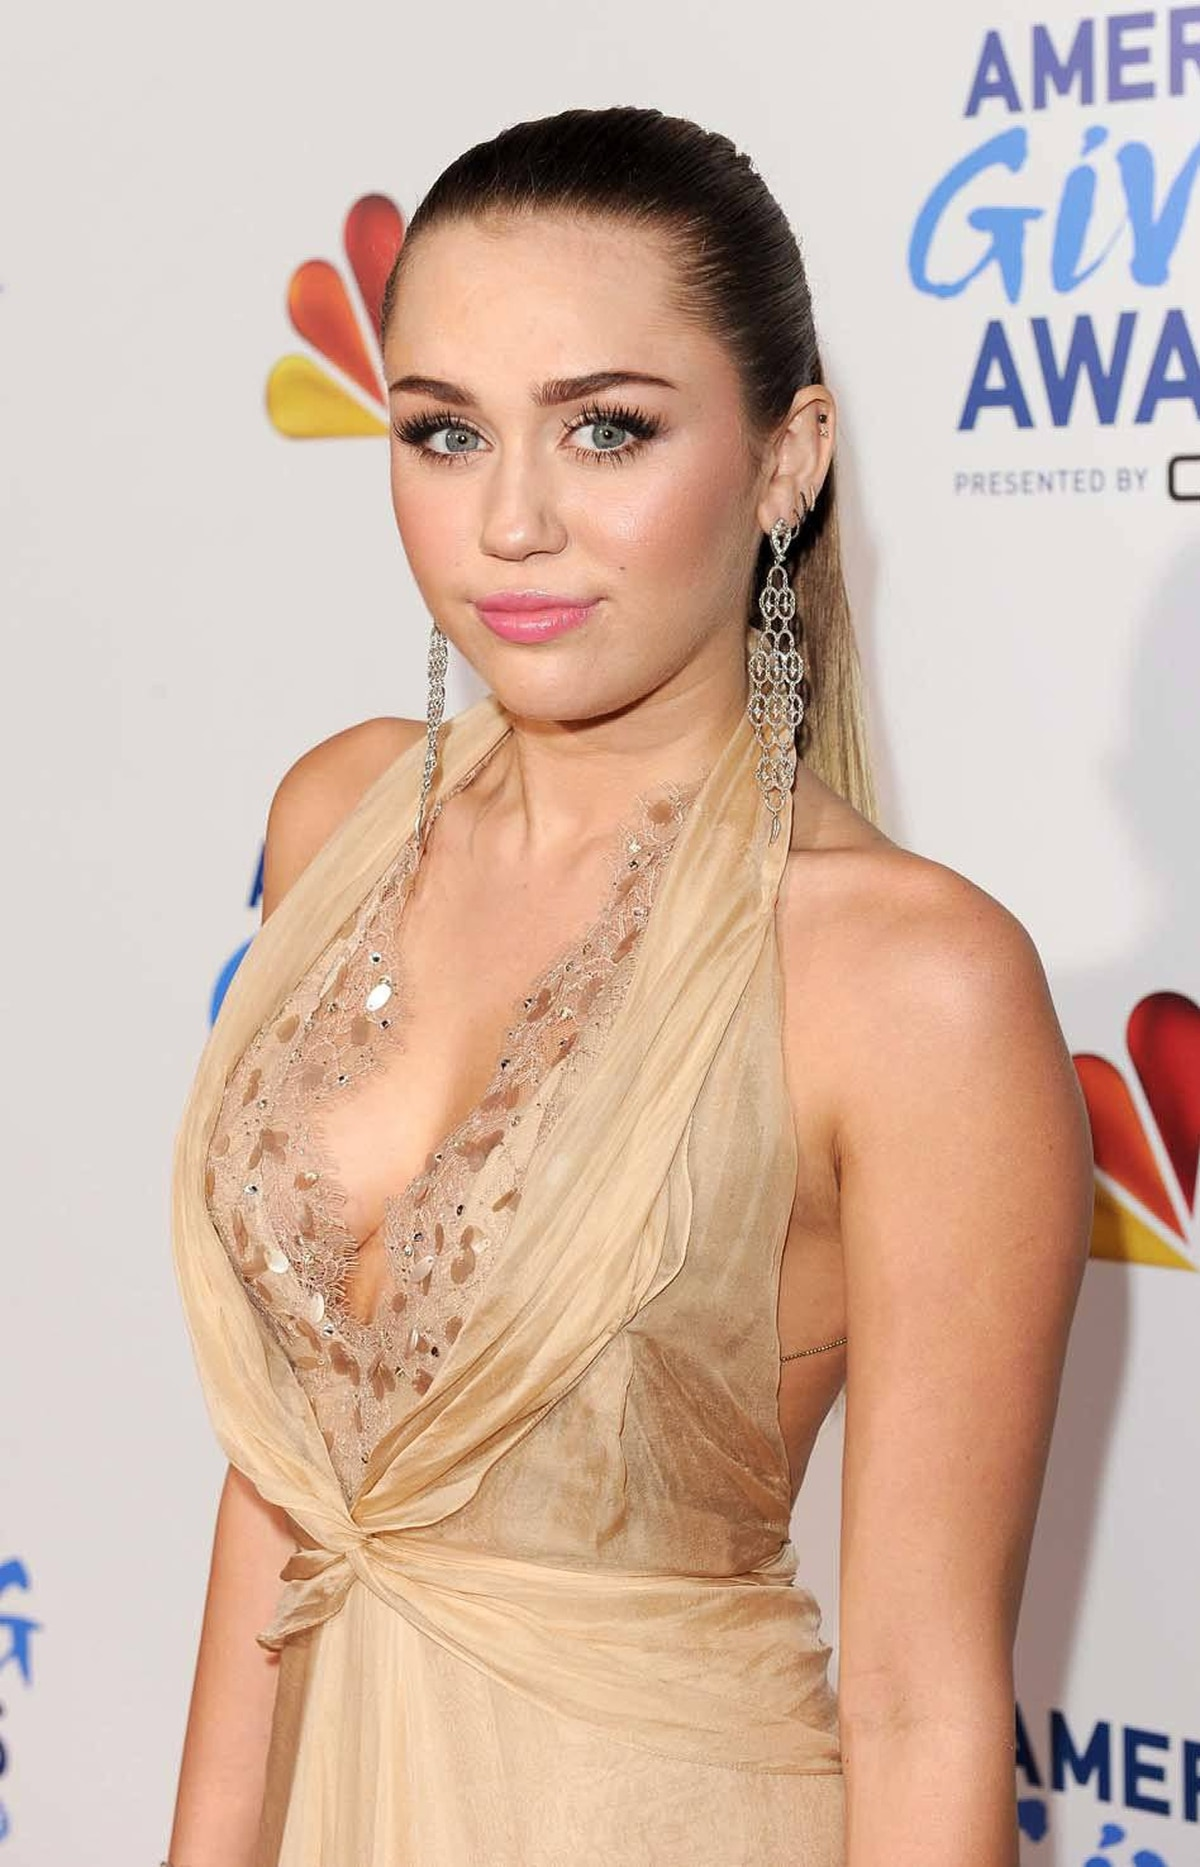 Actress/singer Miley Cyrus is a very giving American at the American Giving Awards in Los Angeles last week.